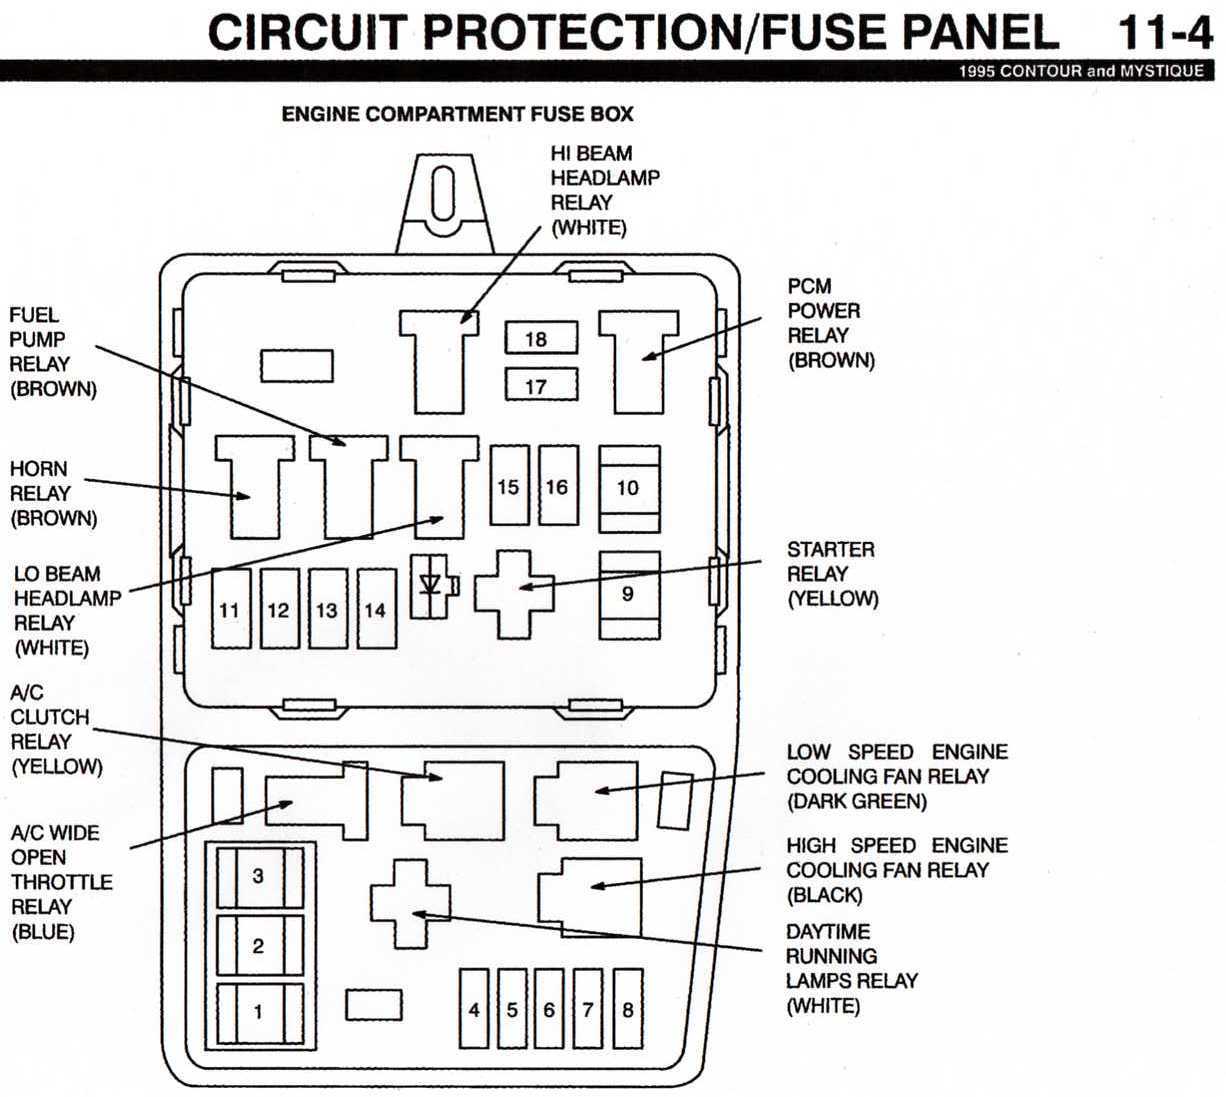 95 Mercury Mystique Fuse Box Data Schema 1995 Diagram Where Is The Radiator Fan Relay Located On A